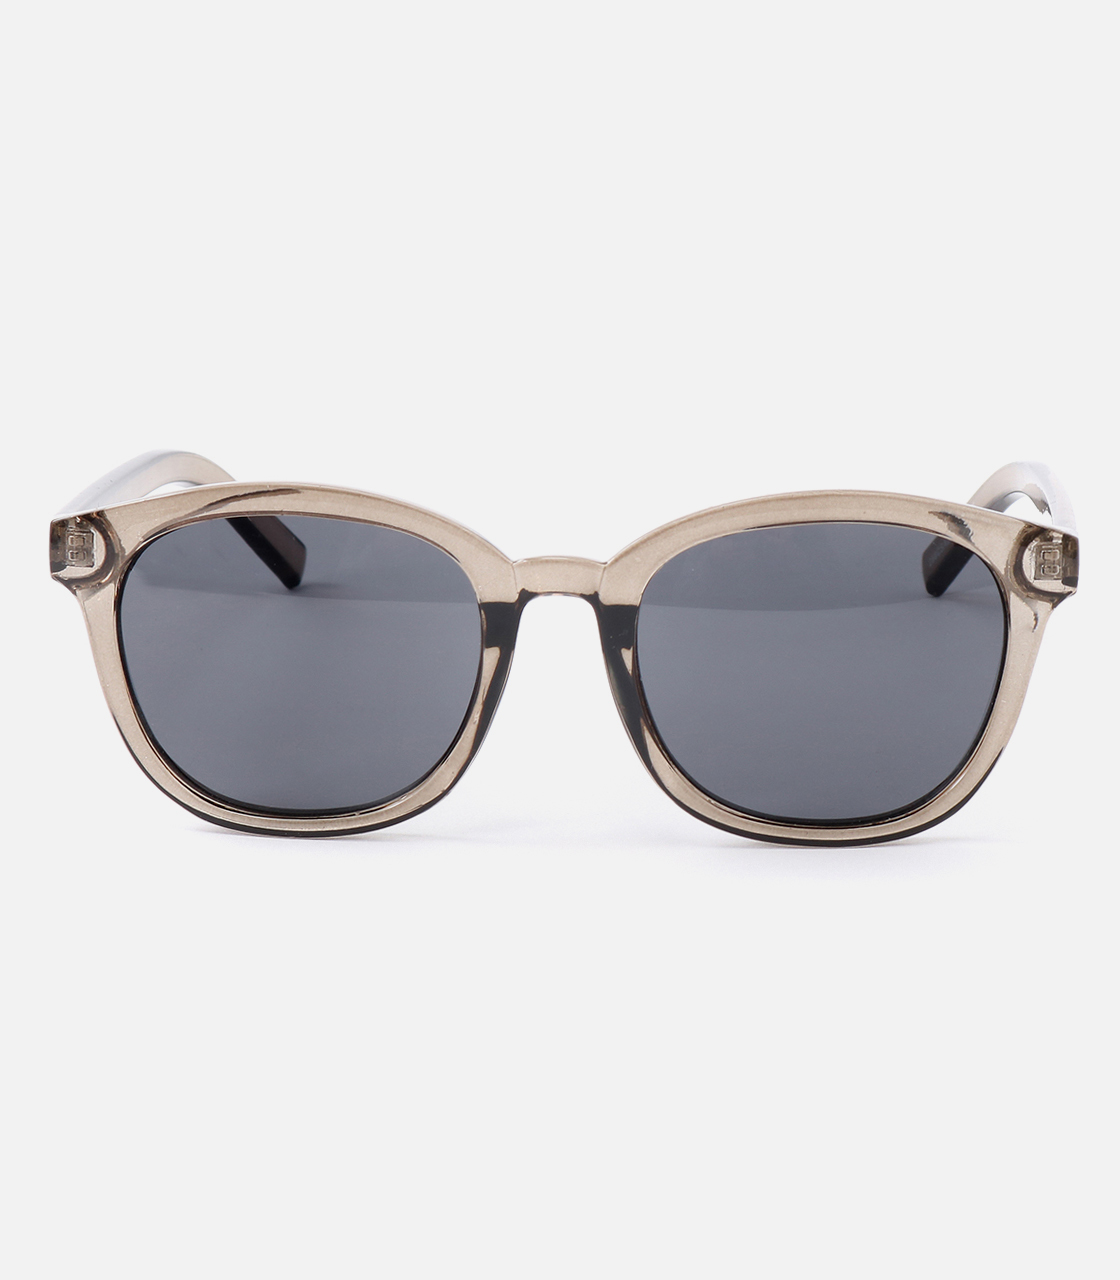 【AZUL BY MOUSSY】BIG FLAME SUNGLASSES 詳細画像 L/BLK 4